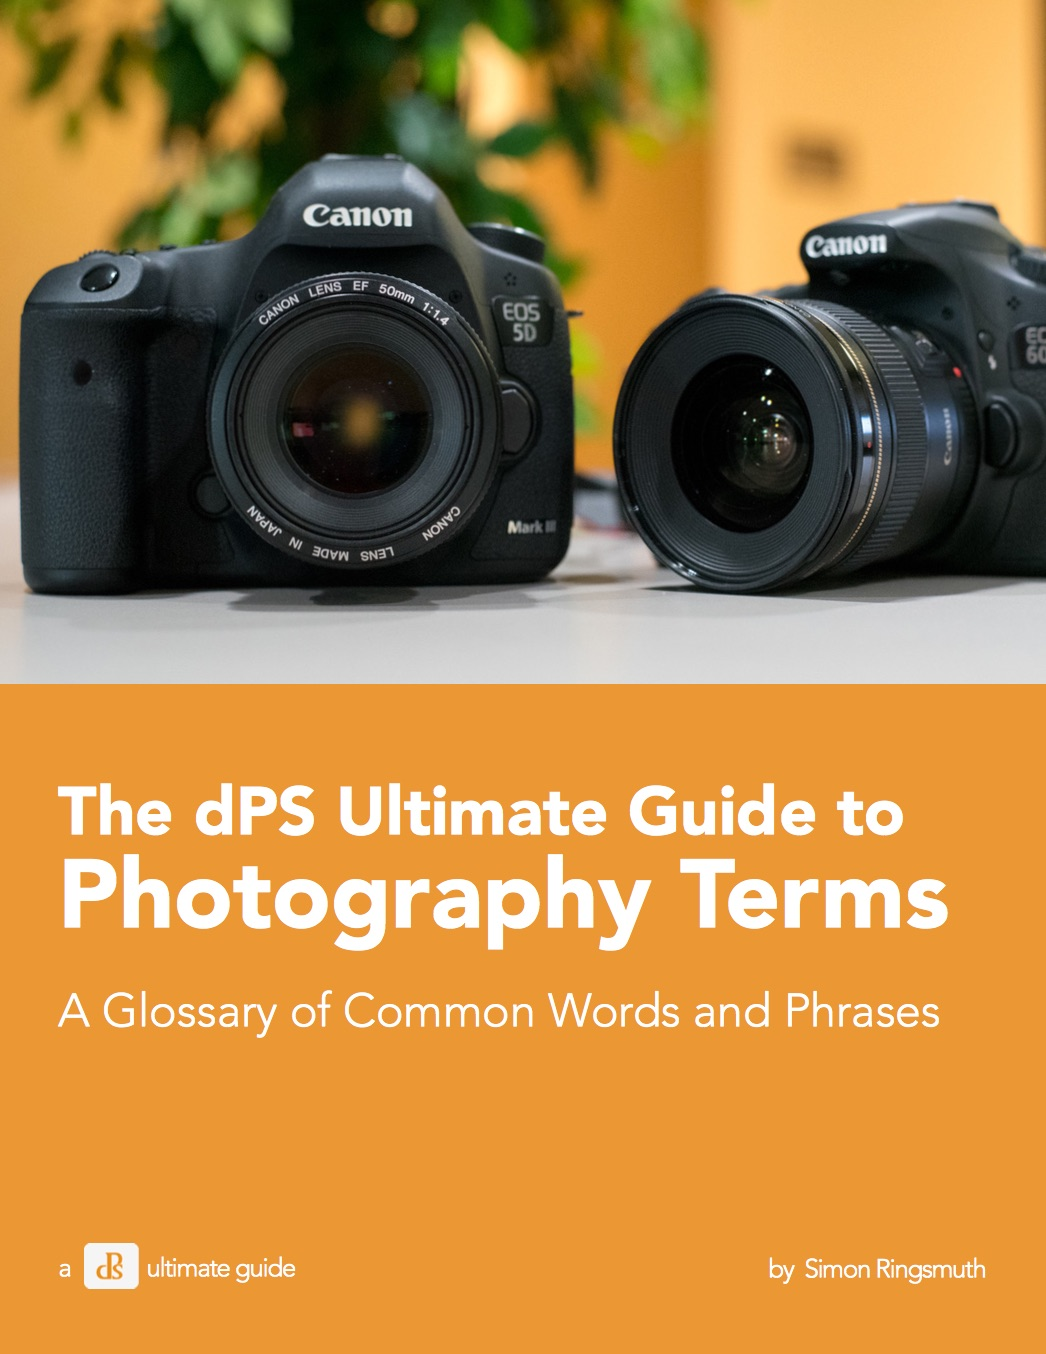 The Ultimate Beginners Guide to Photography